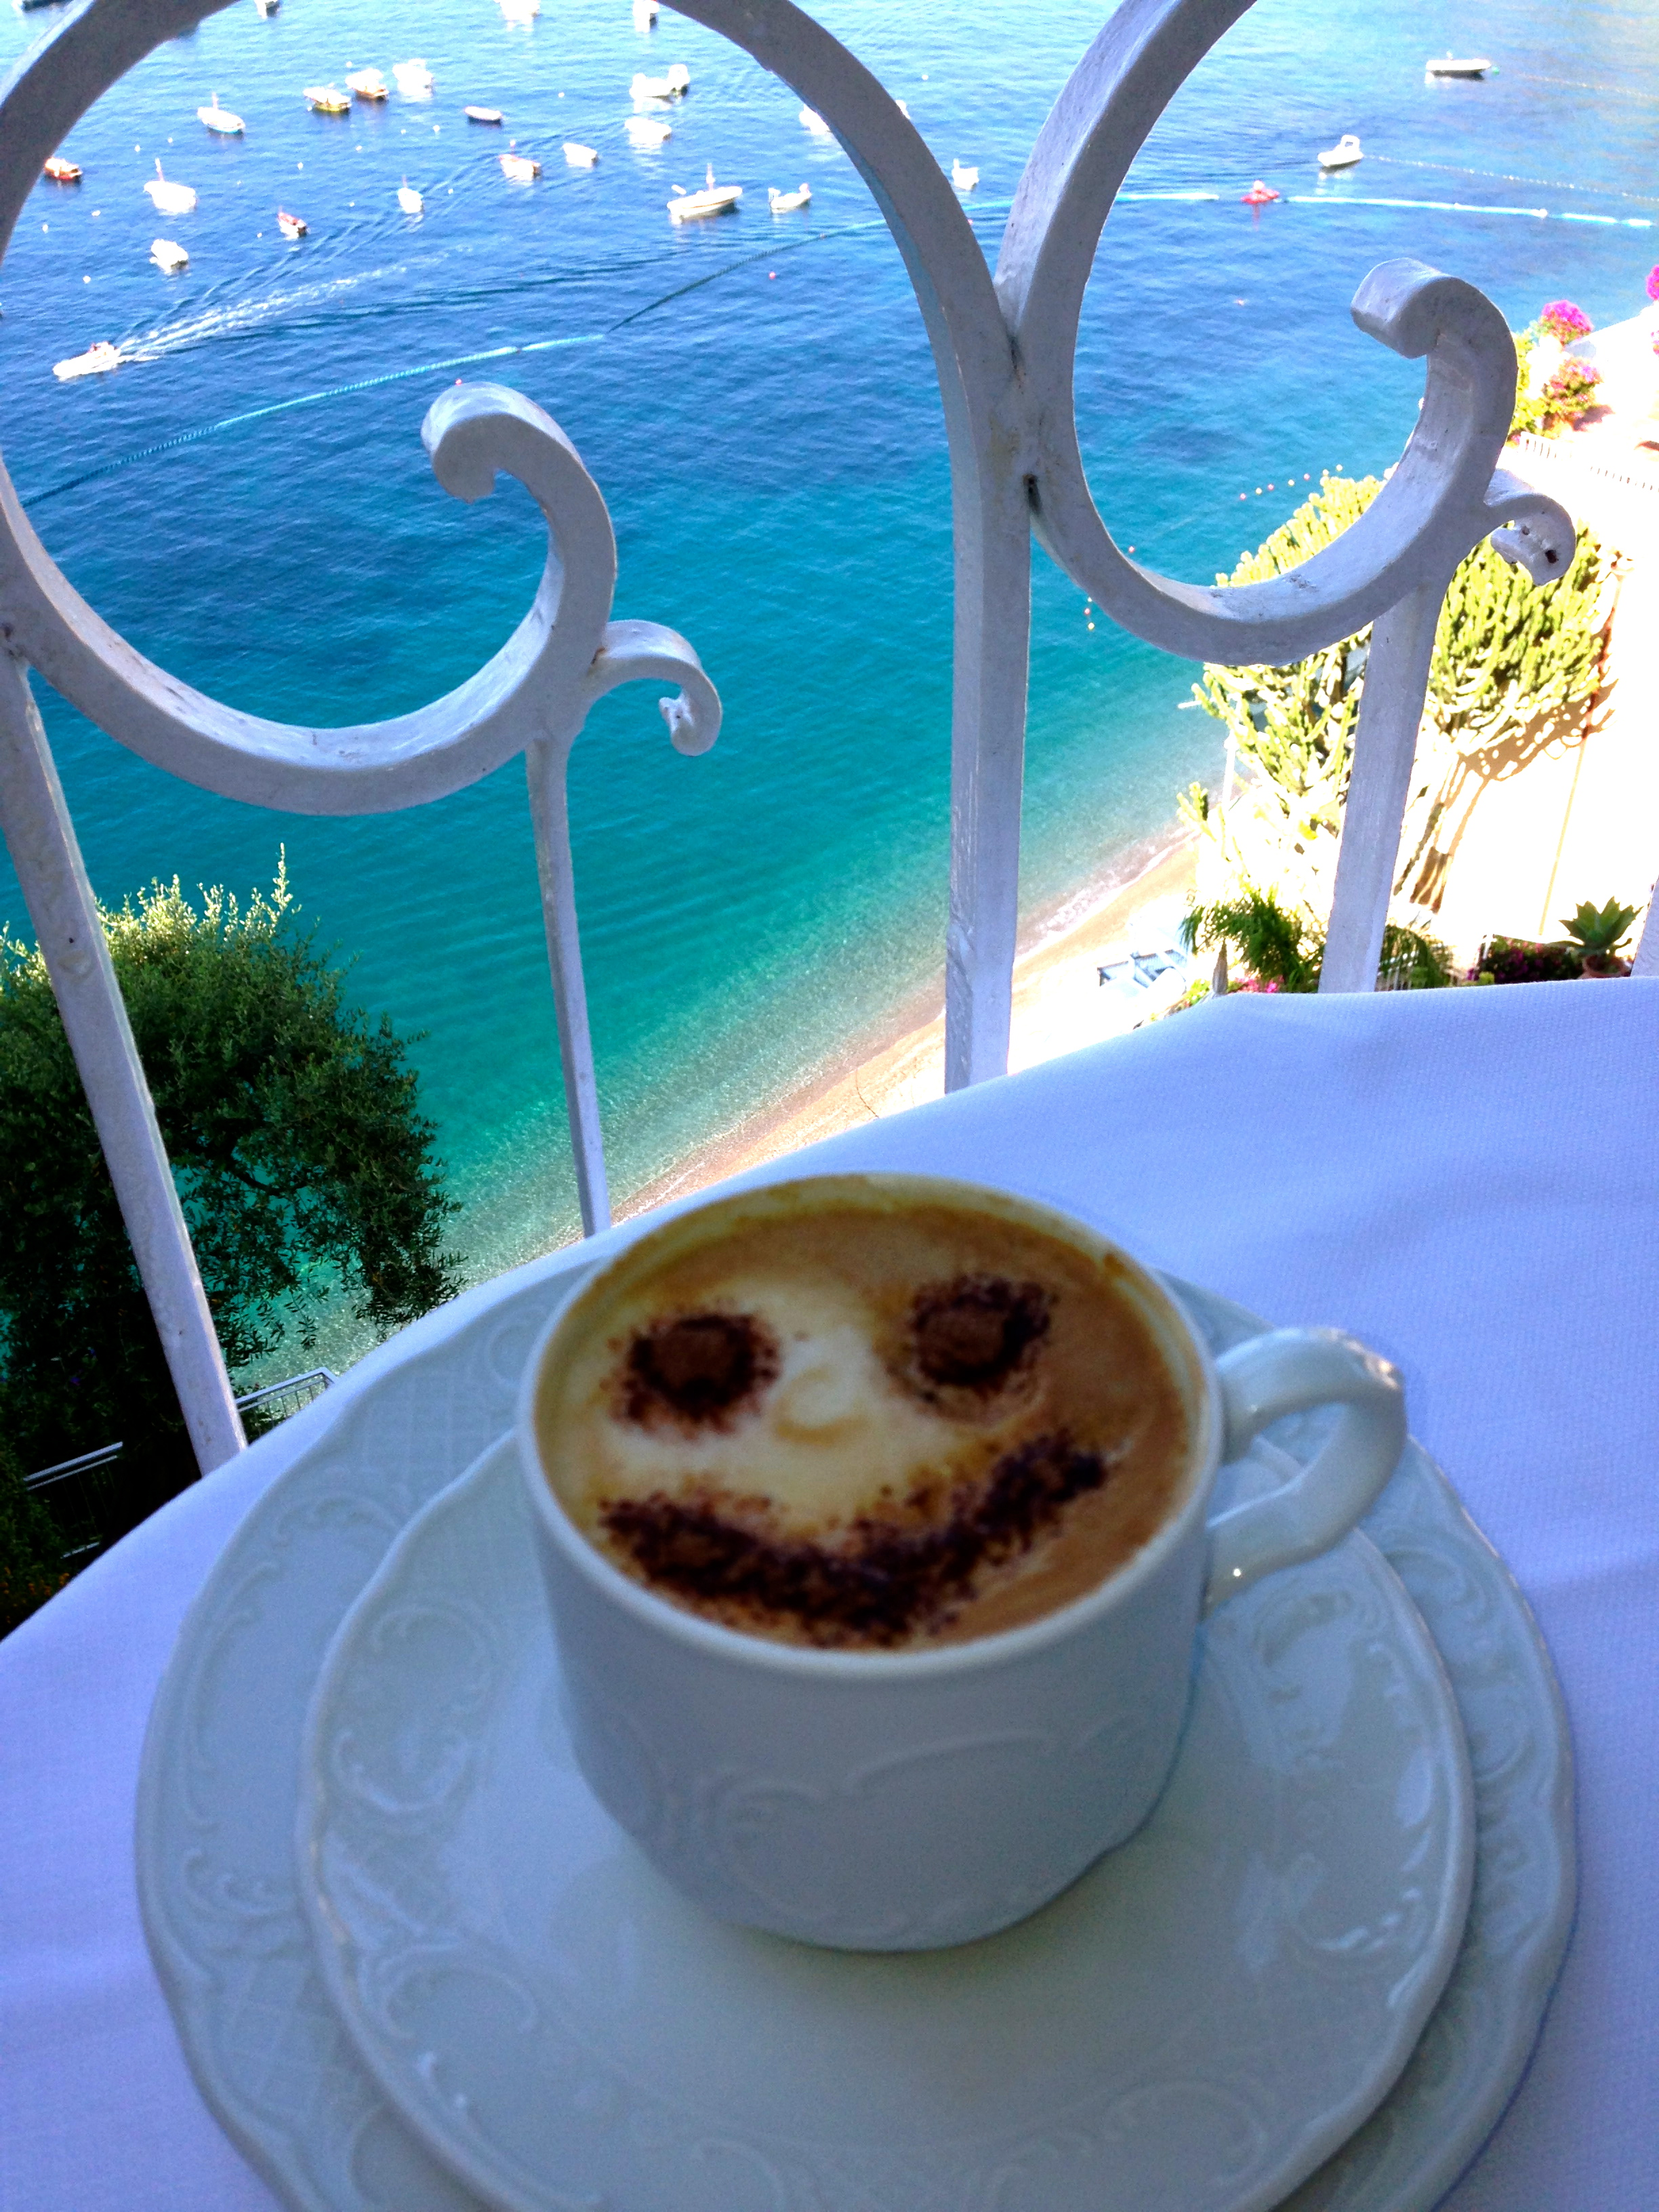 Hotel Marincanto Positano View at Breakfast